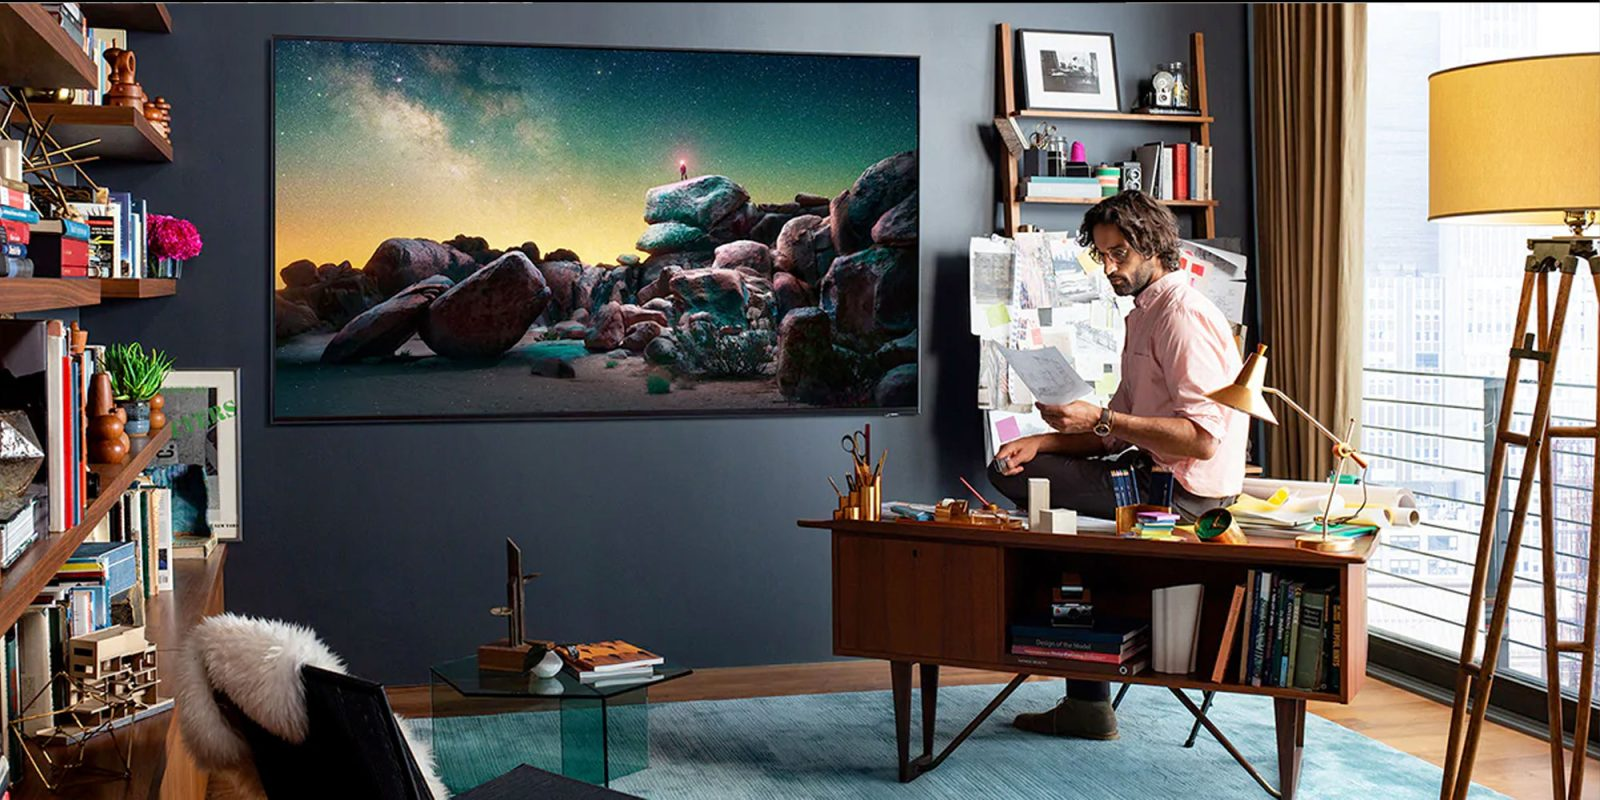 Amazon Labor Day Home Theater sale from $120: Samsung, JBL